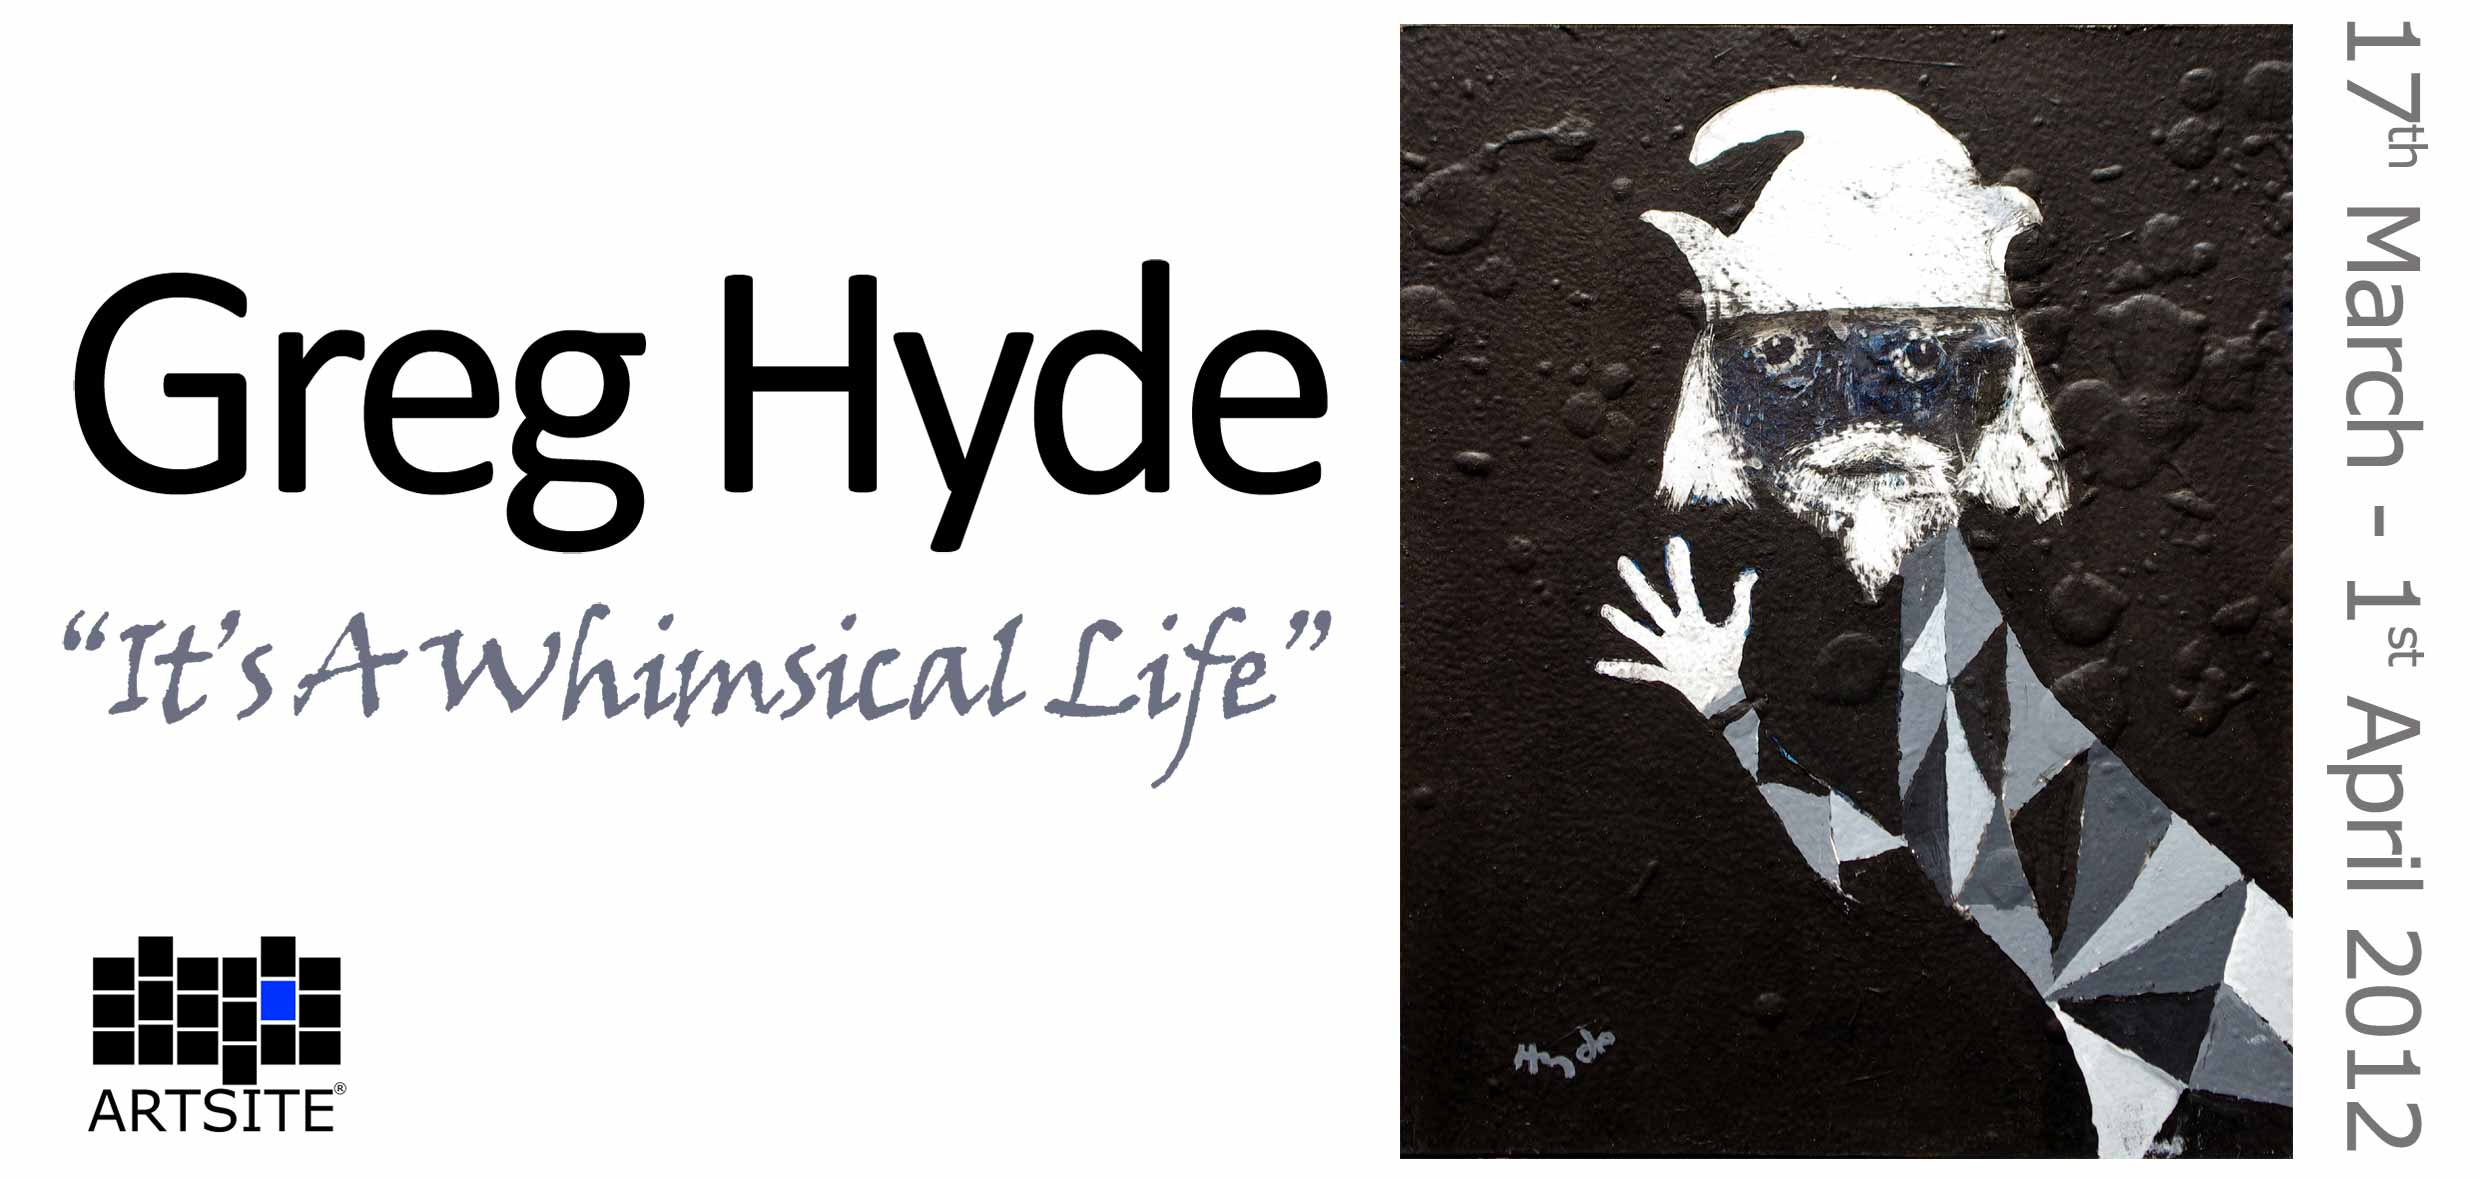 Greg Hyde ~ It's a Whimsical Life. Artsite Gallery 17 March - 01 April 2012.